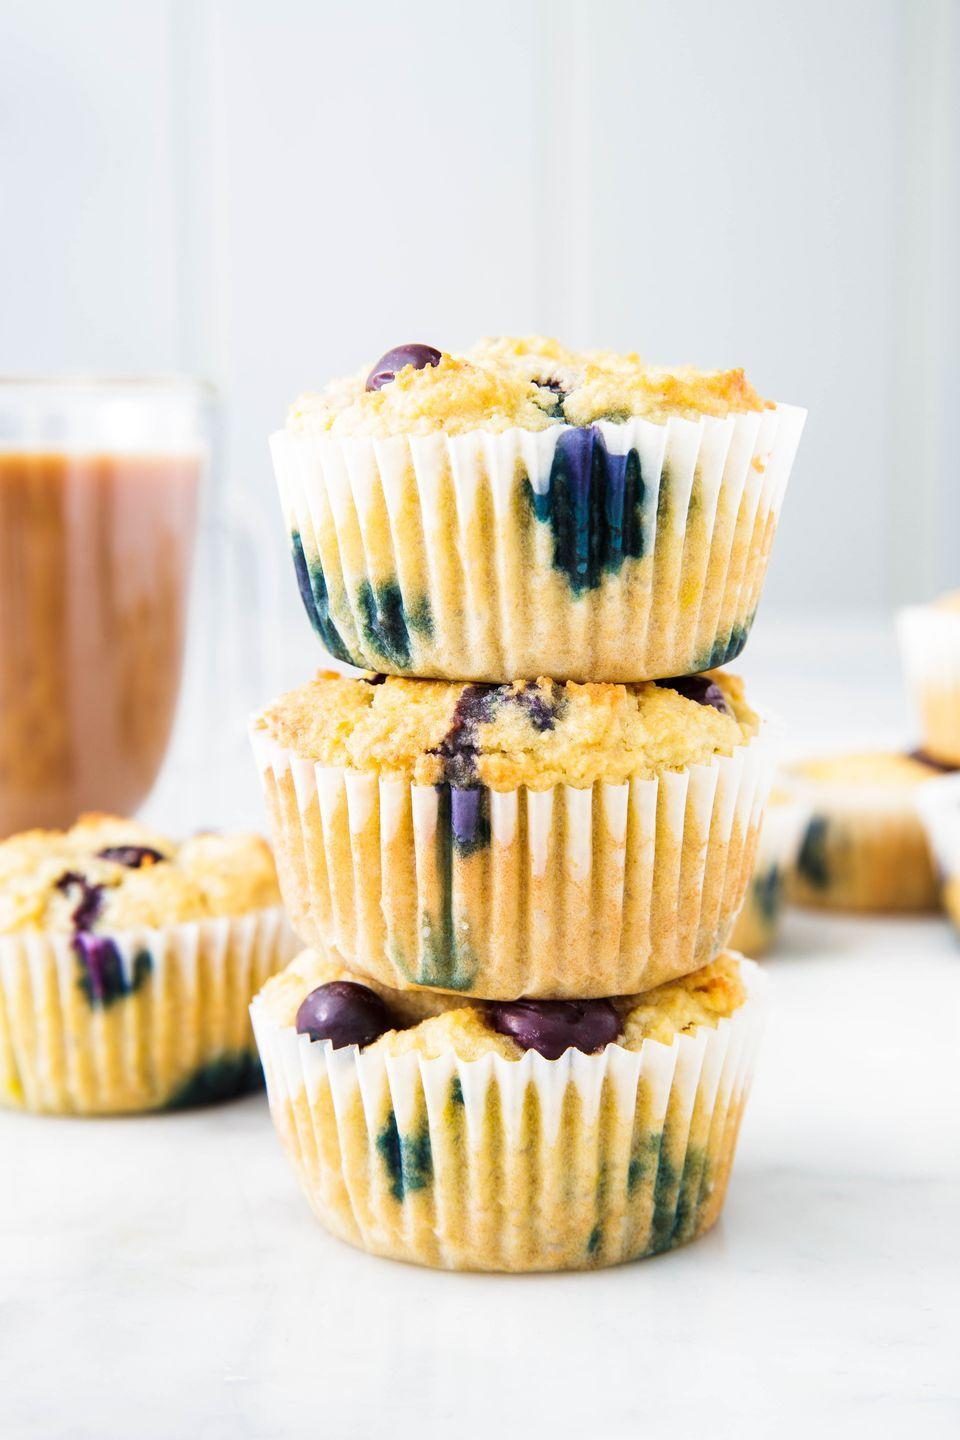 "<p>They've got protein, fruit, AND they're sugar free.</p><p>Get the recipe from <a href=""https://www.delish.com/cooking/recipe-ideas/a25349181/keto-blueberry-muffins-recipe/"" rel=""nofollow noopener"" target=""_blank"" data-ylk=""slk:Delish"" class=""link rapid-noclick-resp"">Delish</a>. </p>"